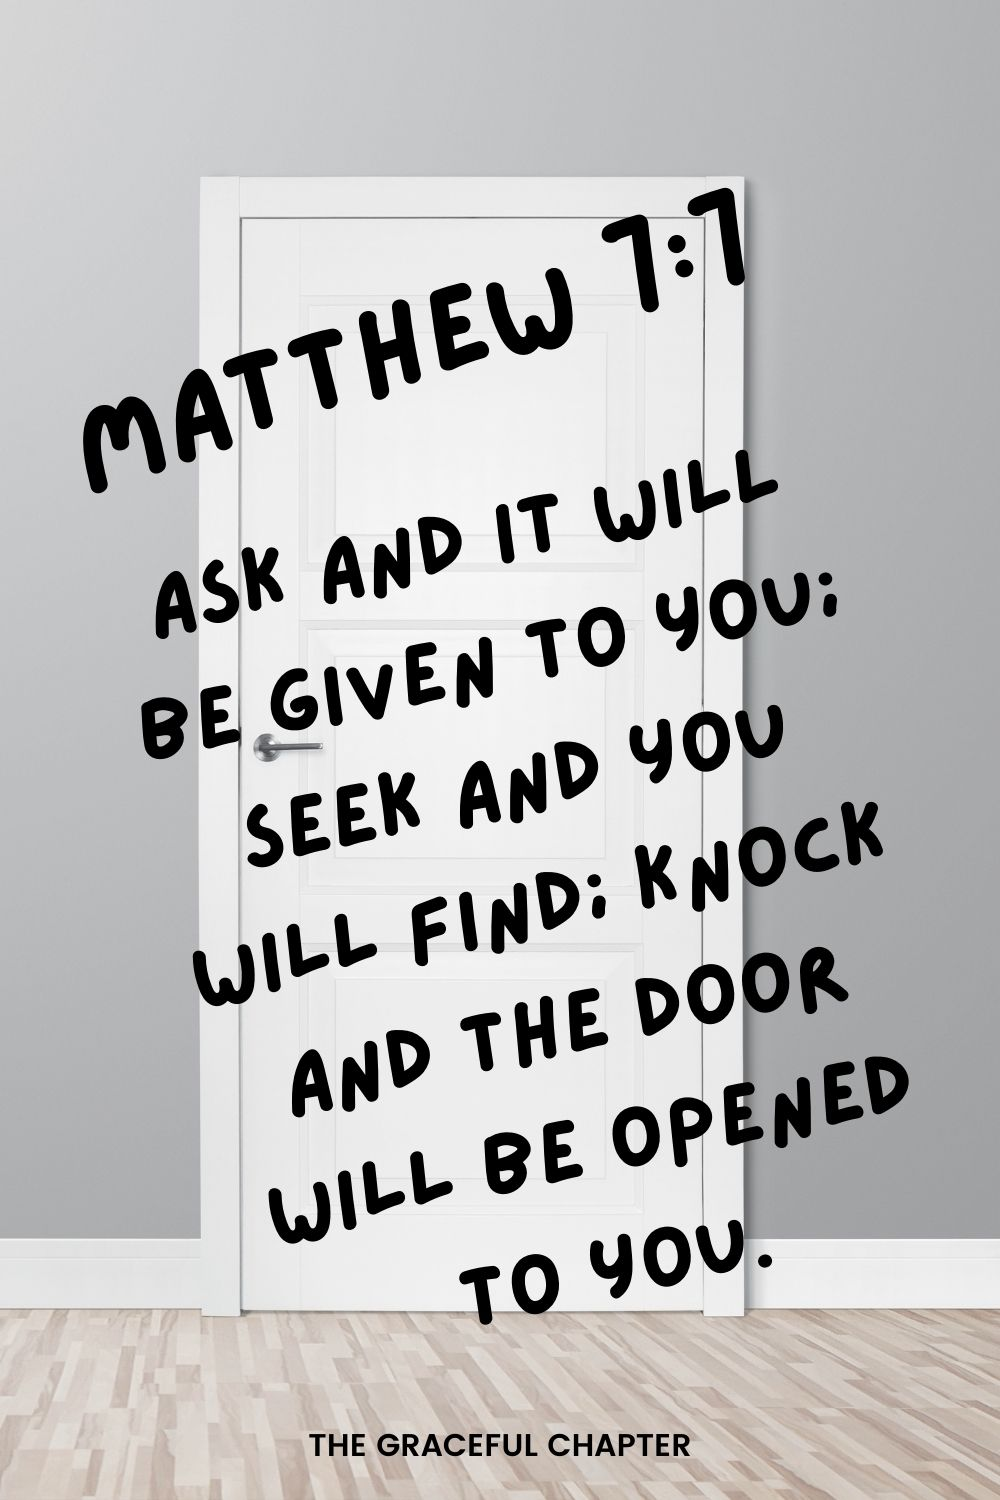 Ask and it will be given to you; seek and you will find; knock and the door will be opened to you. Matthew 7:7